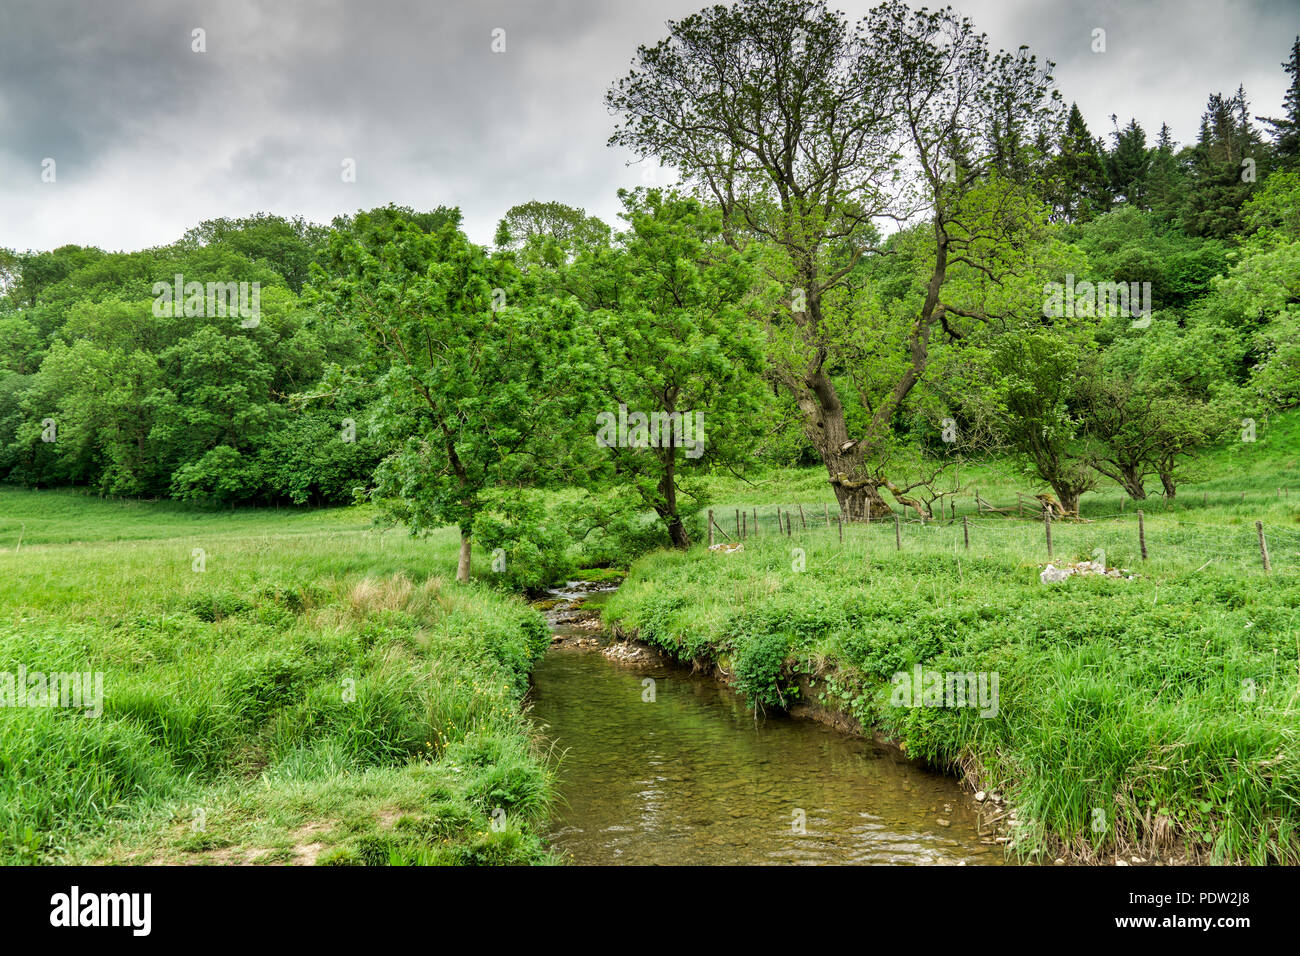 A stream flowing through lush, green countryside. Stock Photo